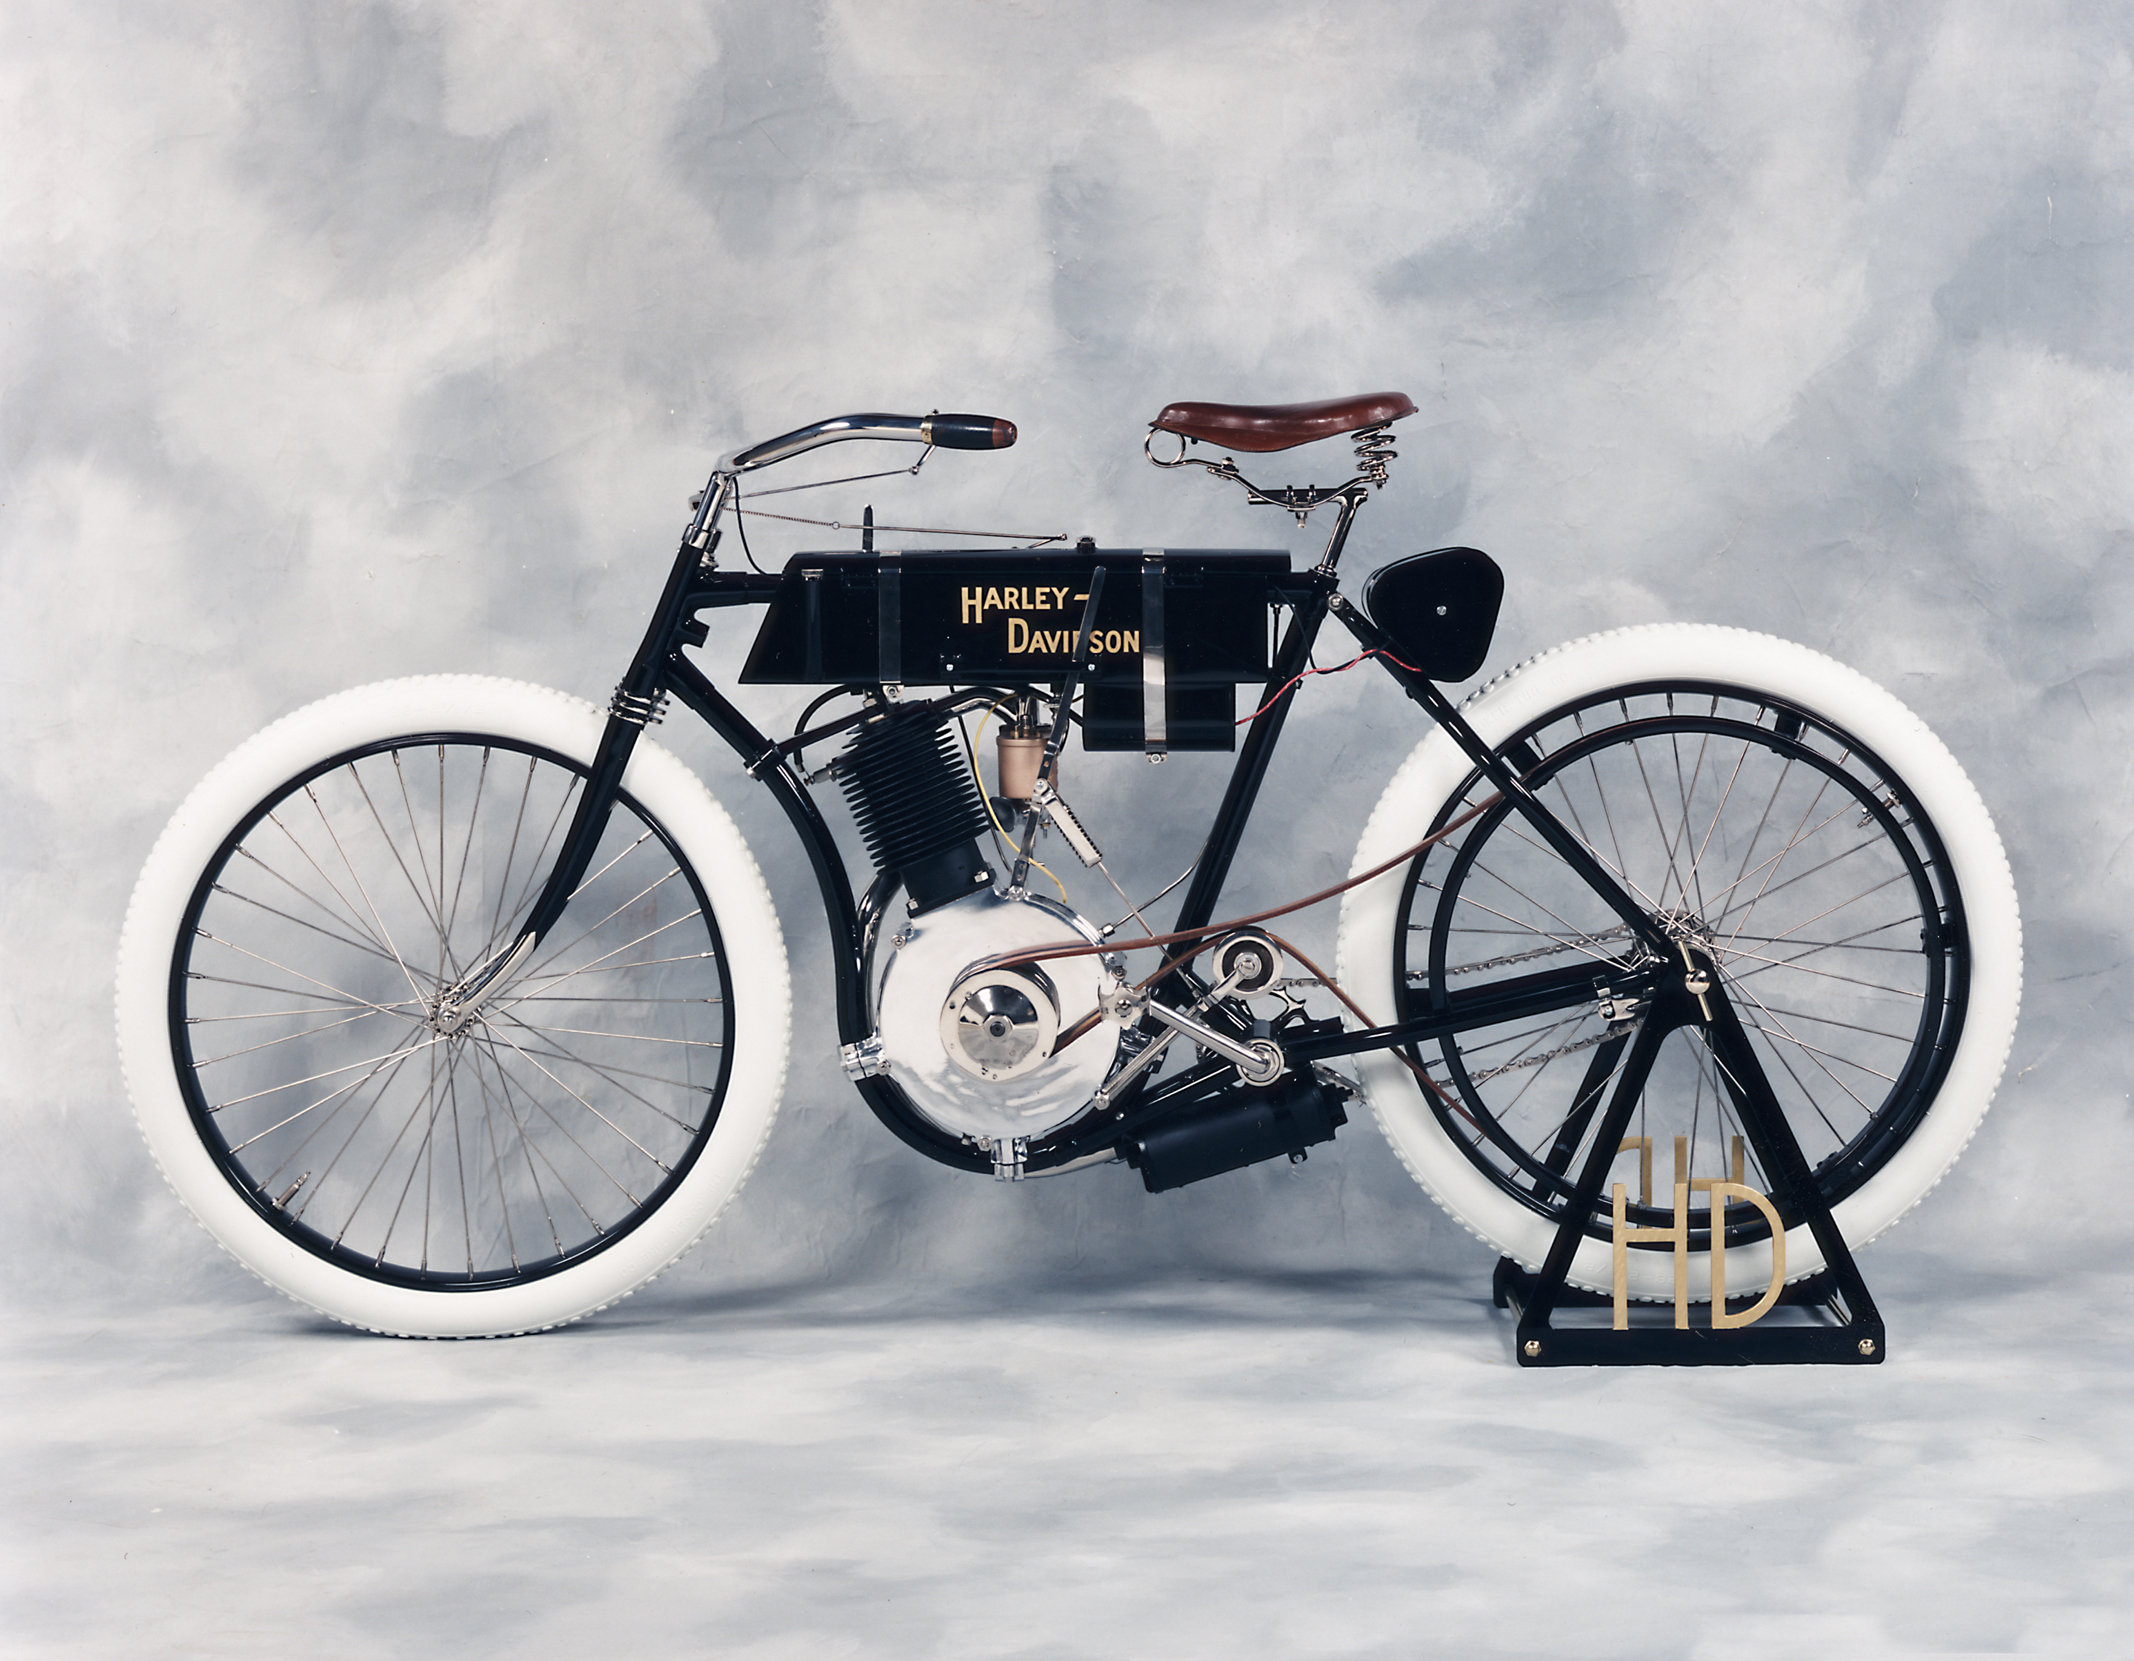 Populaire modelos - Harley Clasica UQ23